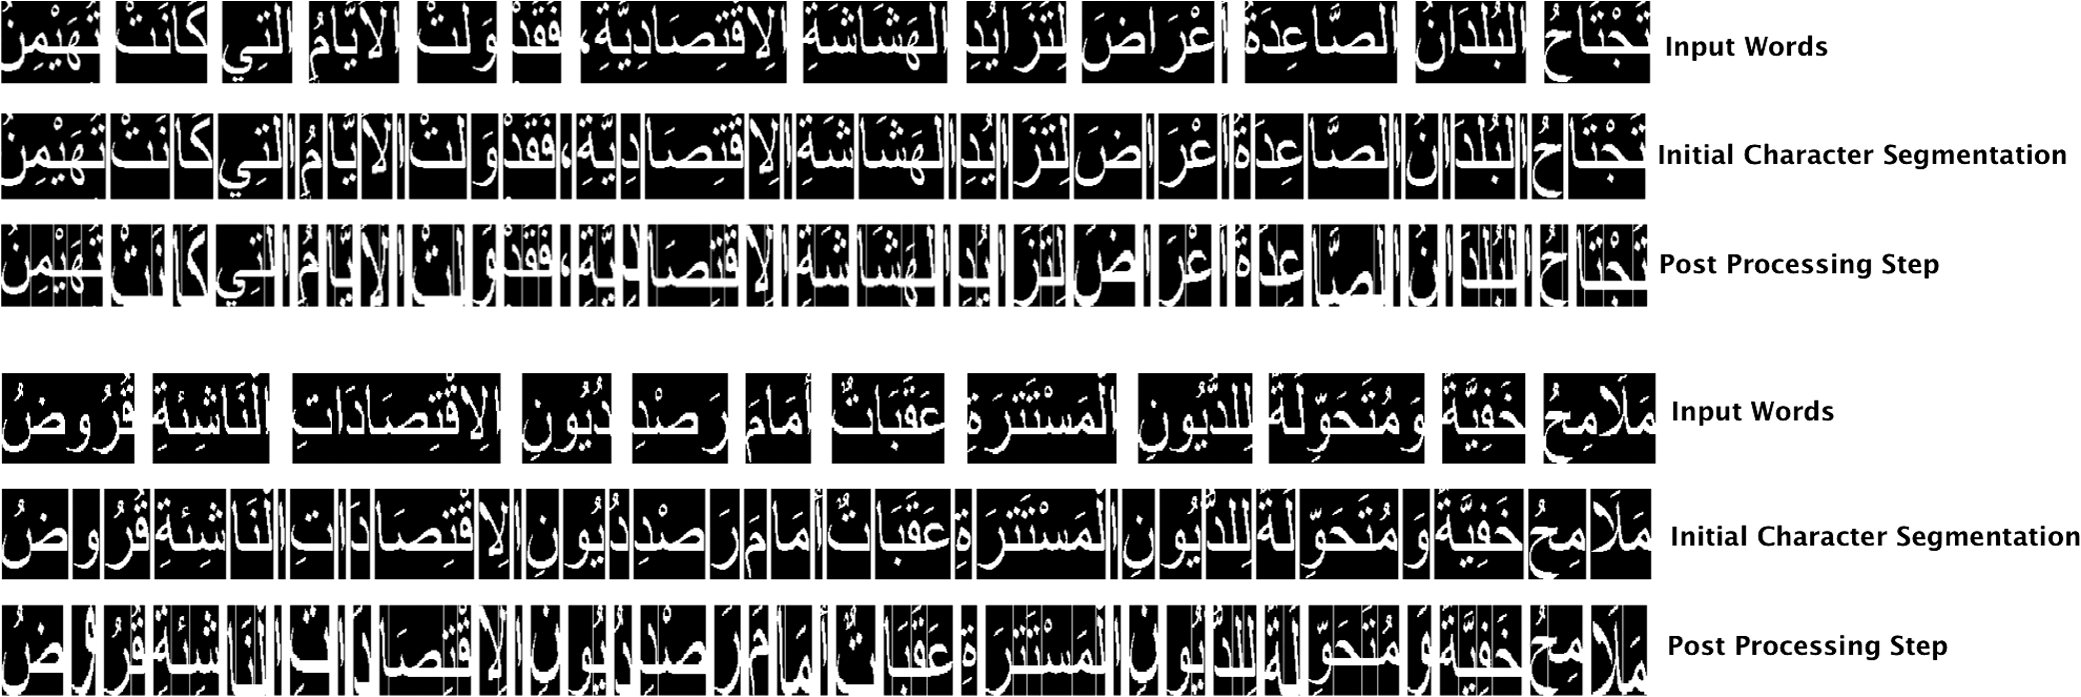 Contour-based character segmentation for printed Arabic text